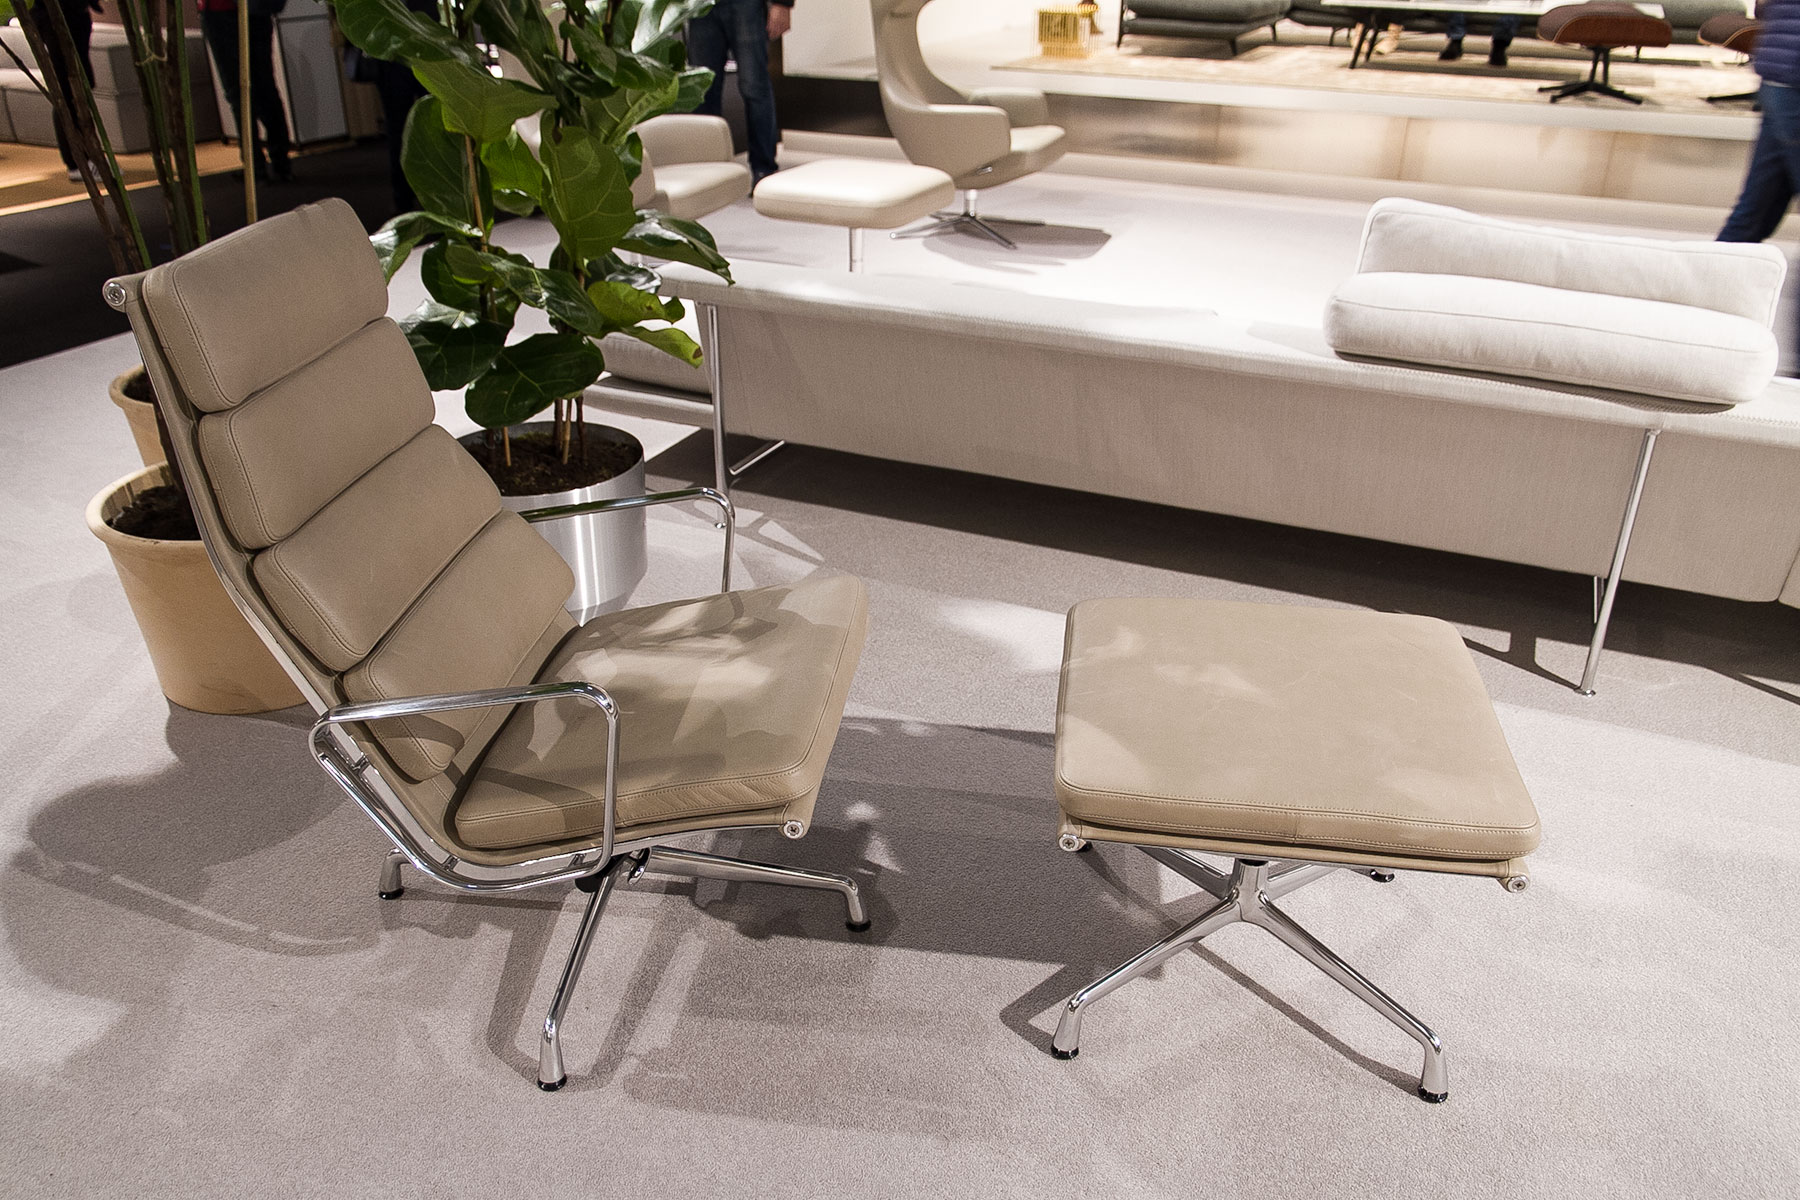 Soft Pad Chair EA 215/216 by Charles & Ray Eames, beige, stand exhibitor Vitra at imm cologne fair 2018, blog post lifetime-pieces.com